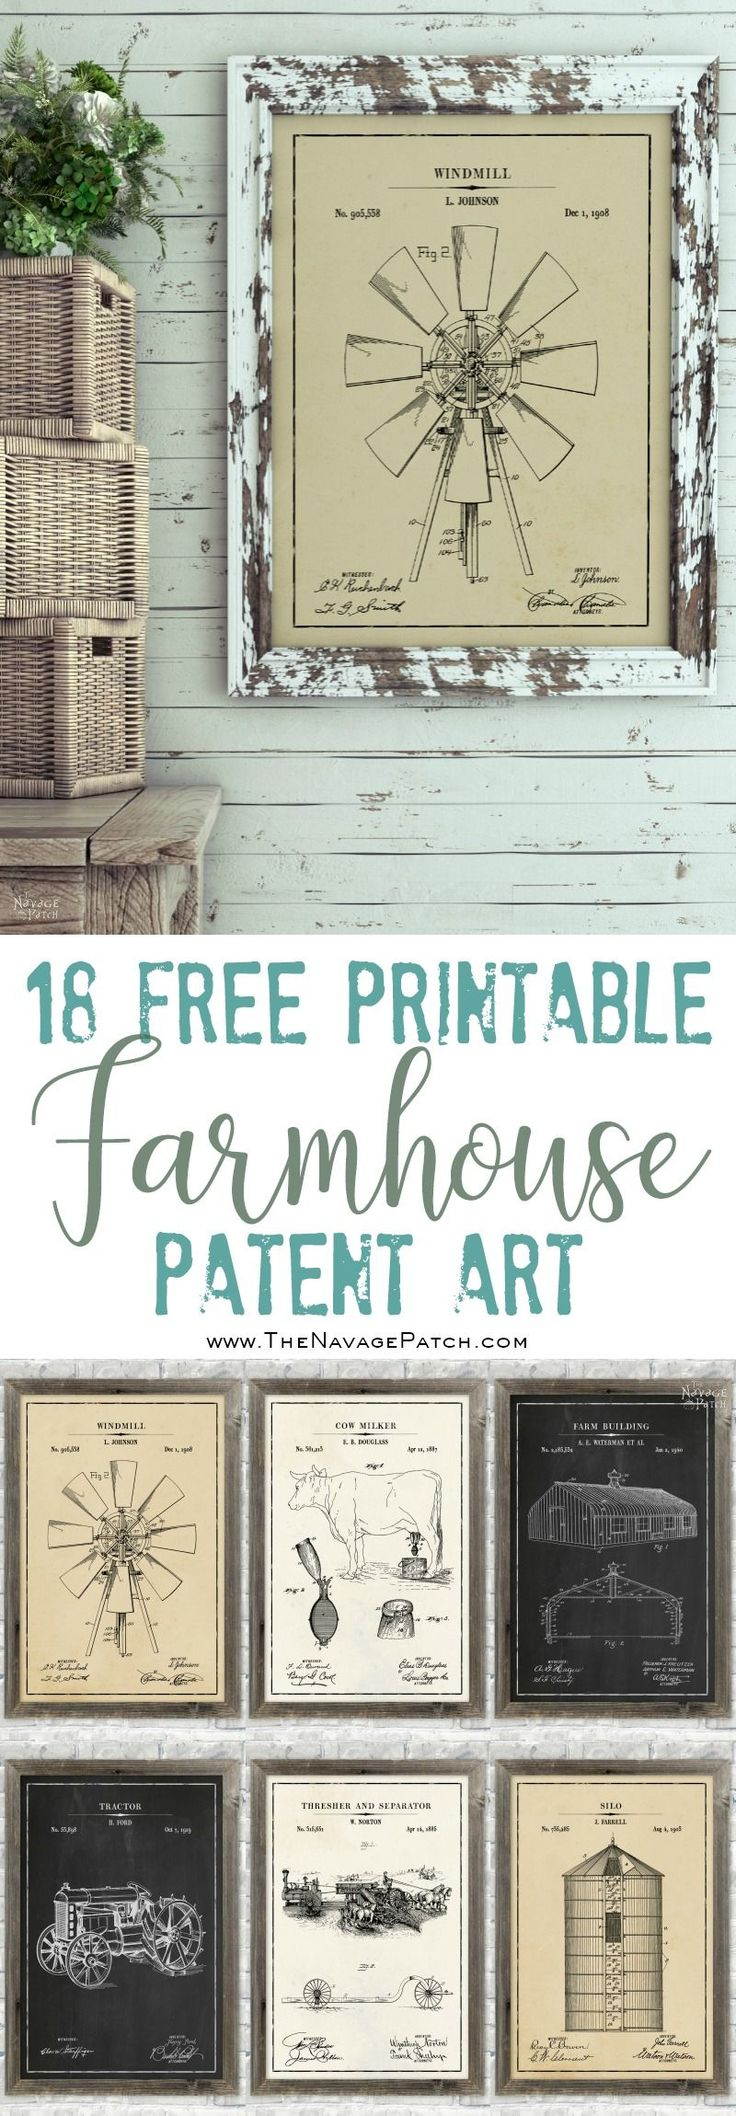 Print & frame silo! Was on site @ location of our first date!! - Farmhouse Patent Art | TheNavagePatch.com